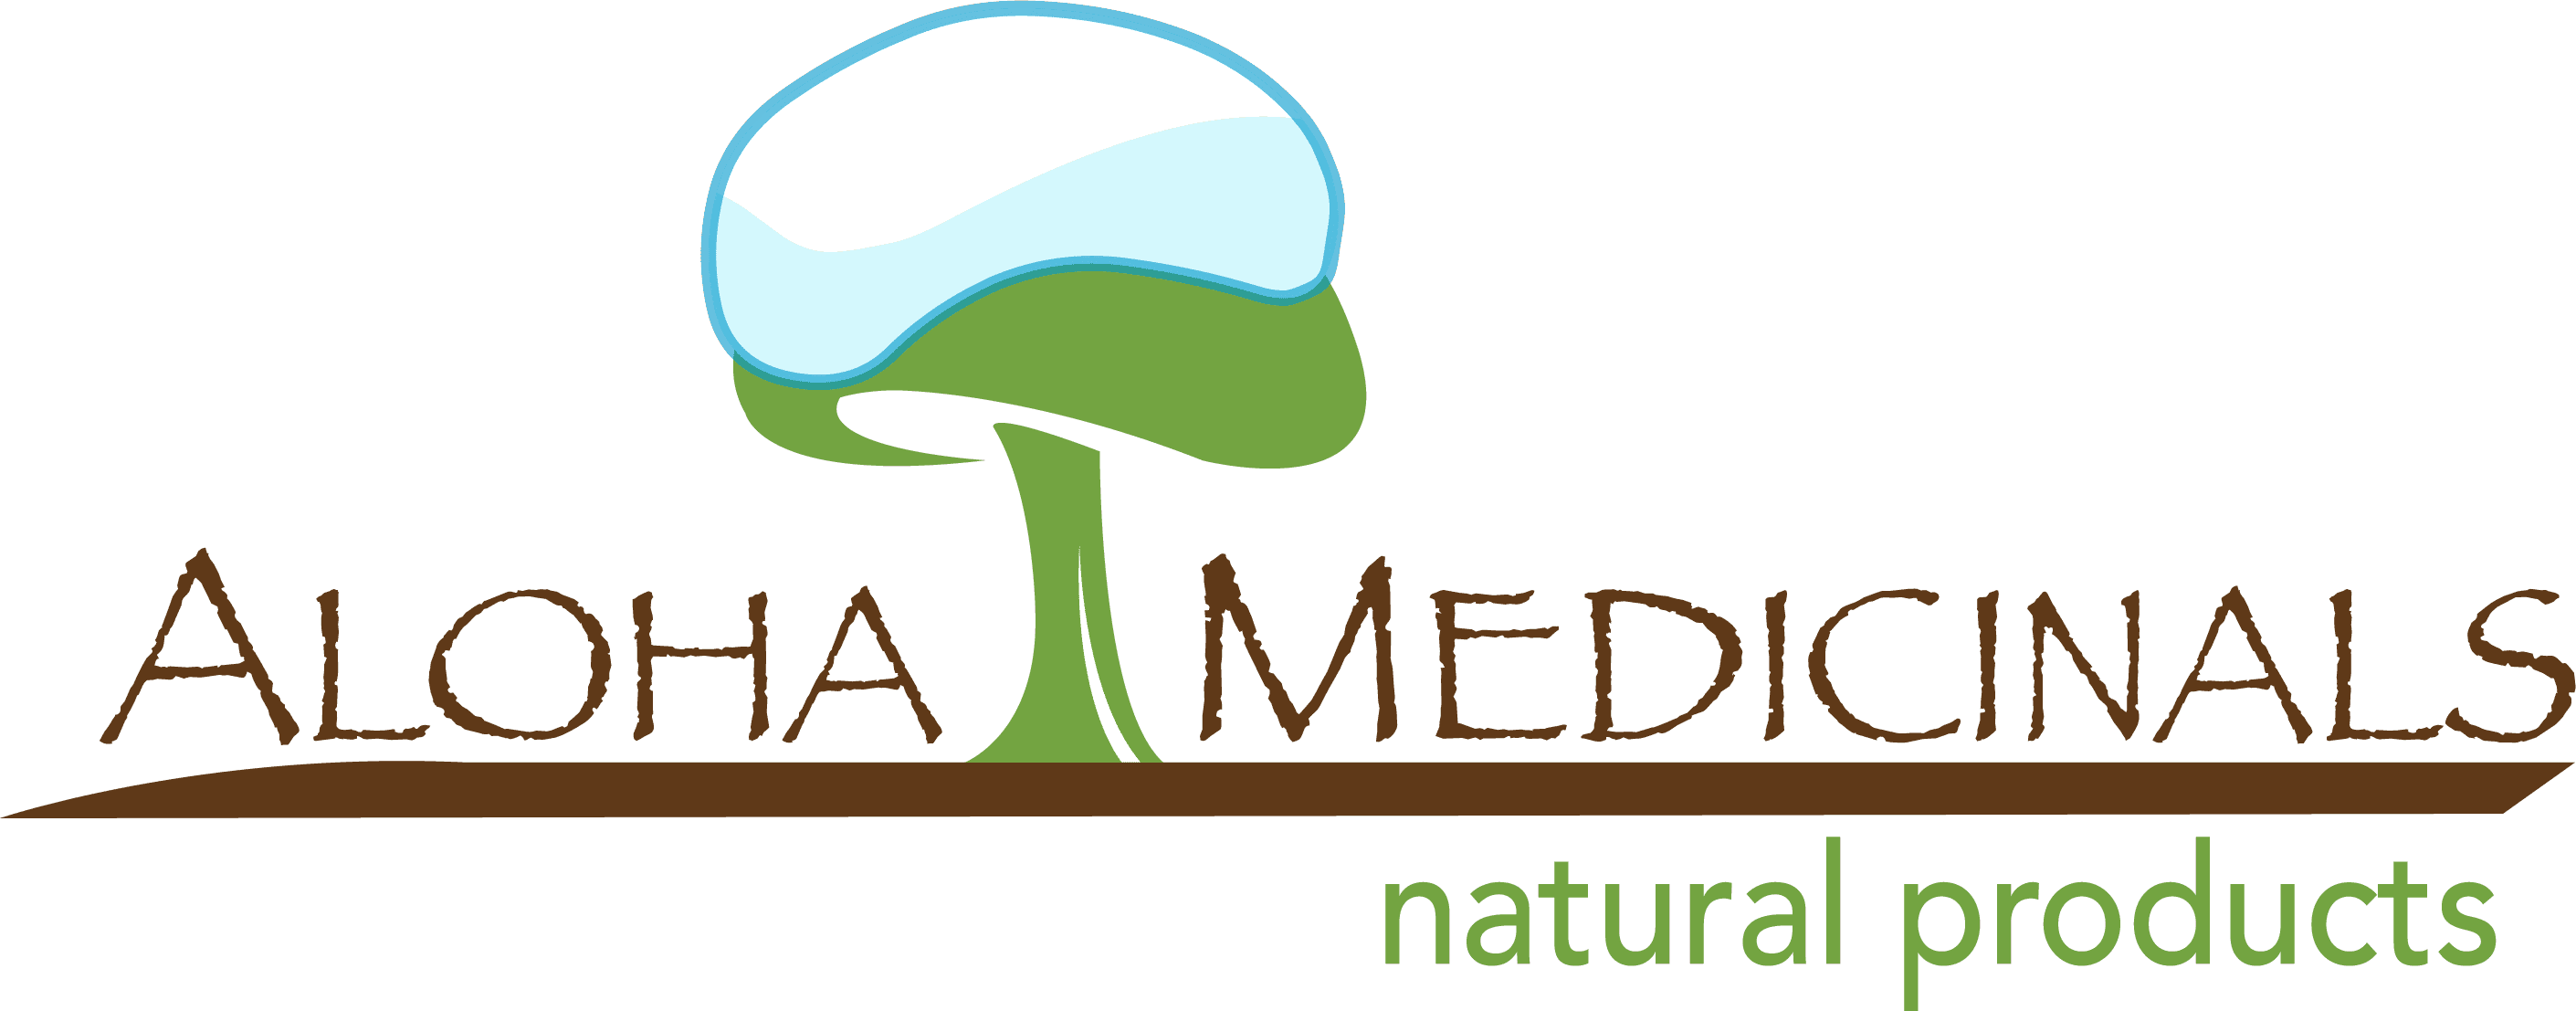 using medicinal mushrooms in recipes